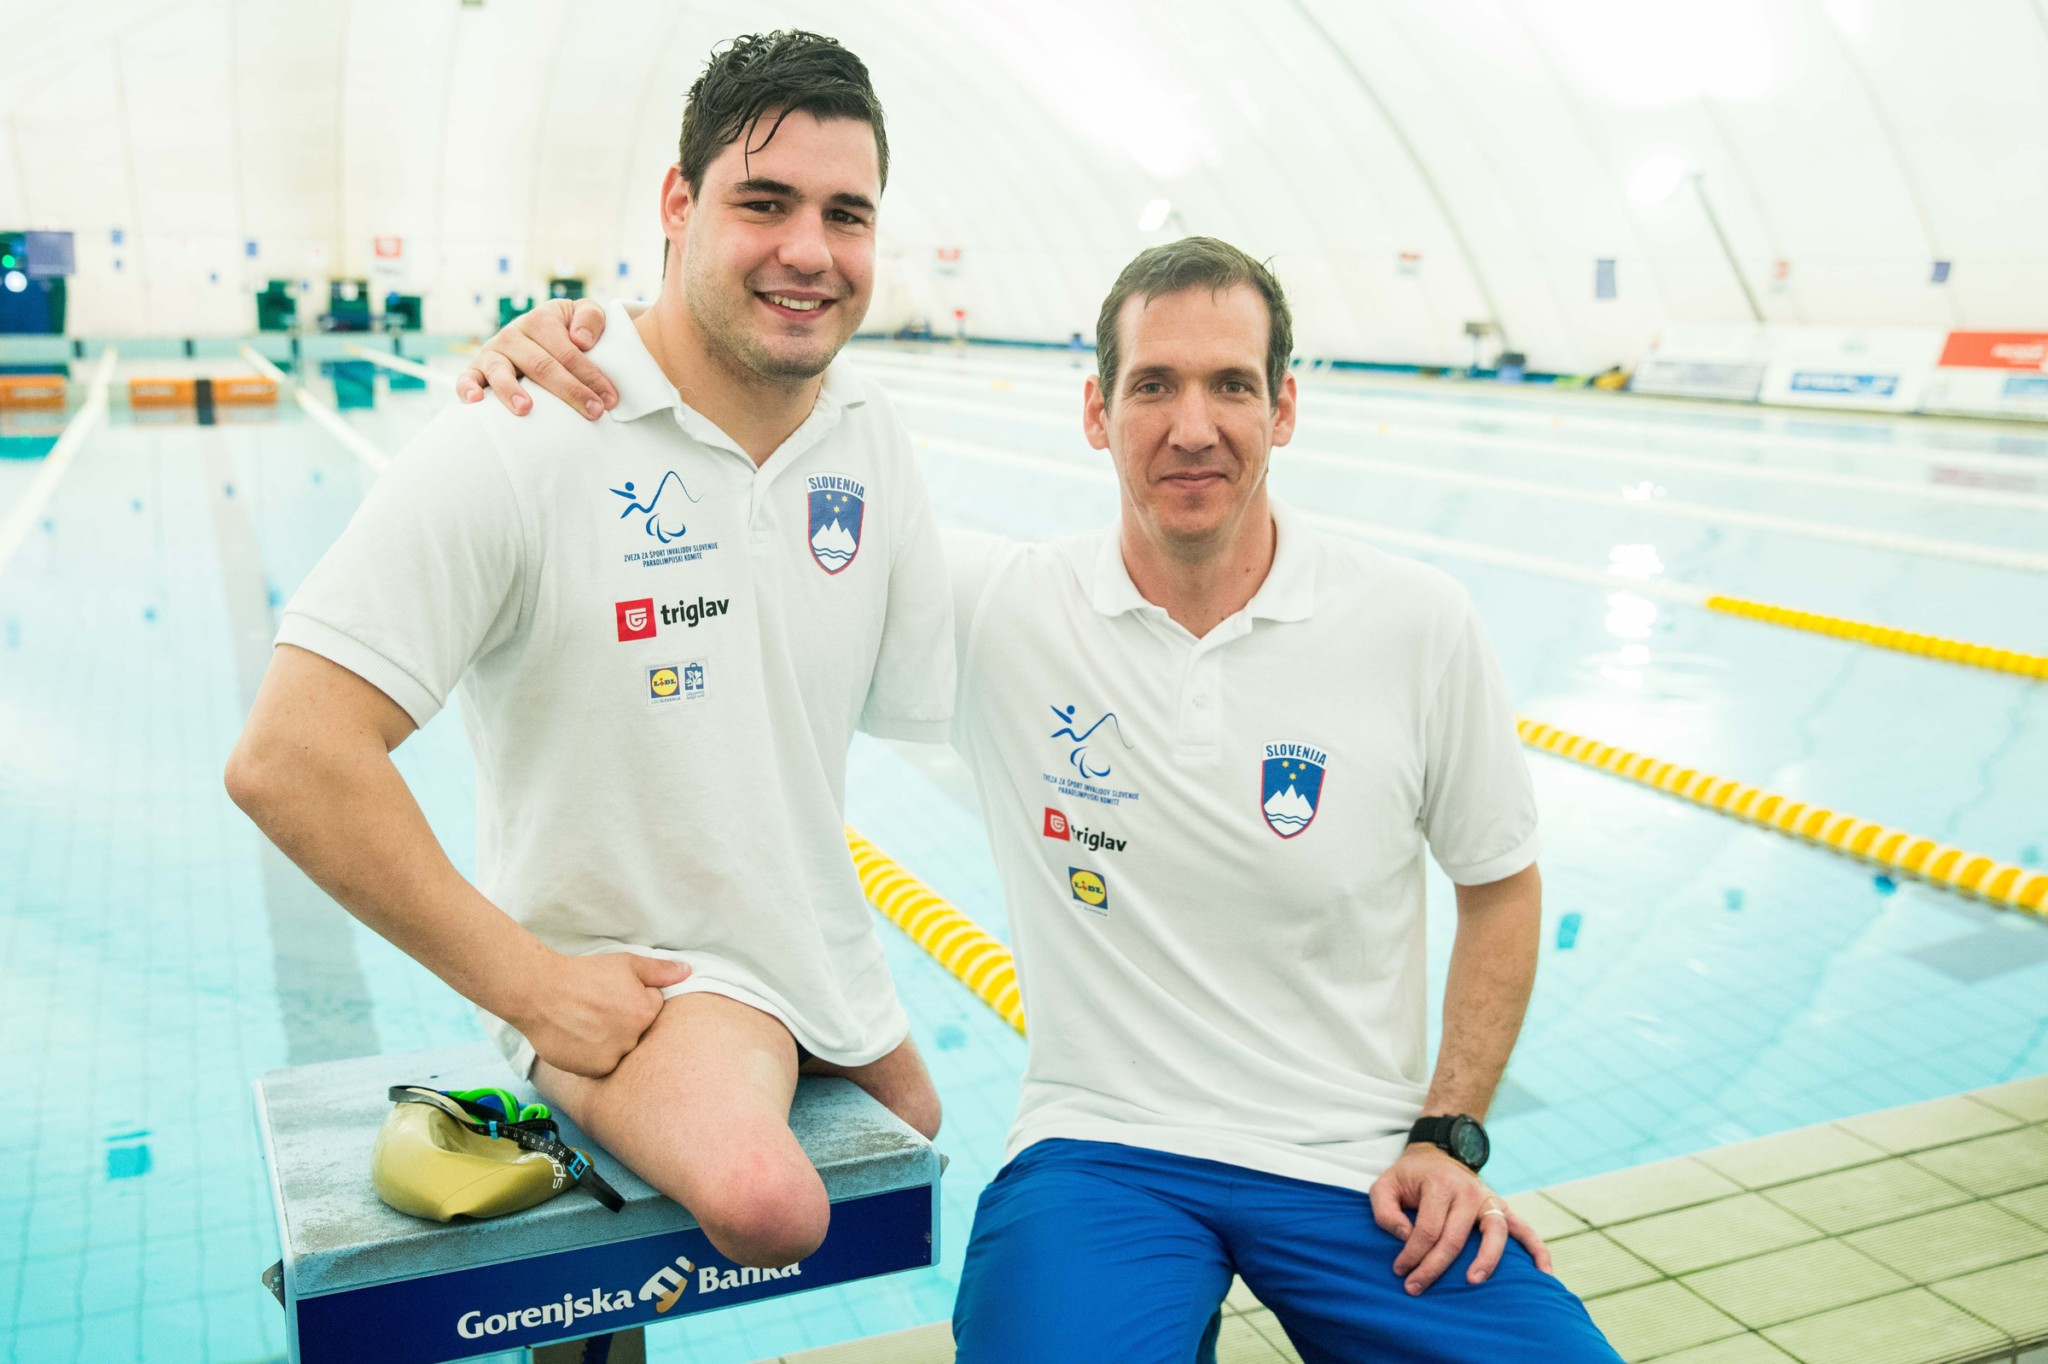 Darko ?uri?, Slovenian paralympic swimmer with his coach Alen Kramar during Media day of the National Paralympic Committee (NPC) of Slovenia, on April 26, 2016 in Olympic pool Radovljica, Slovenia. Photo by Vid Ponikvar / Sportida